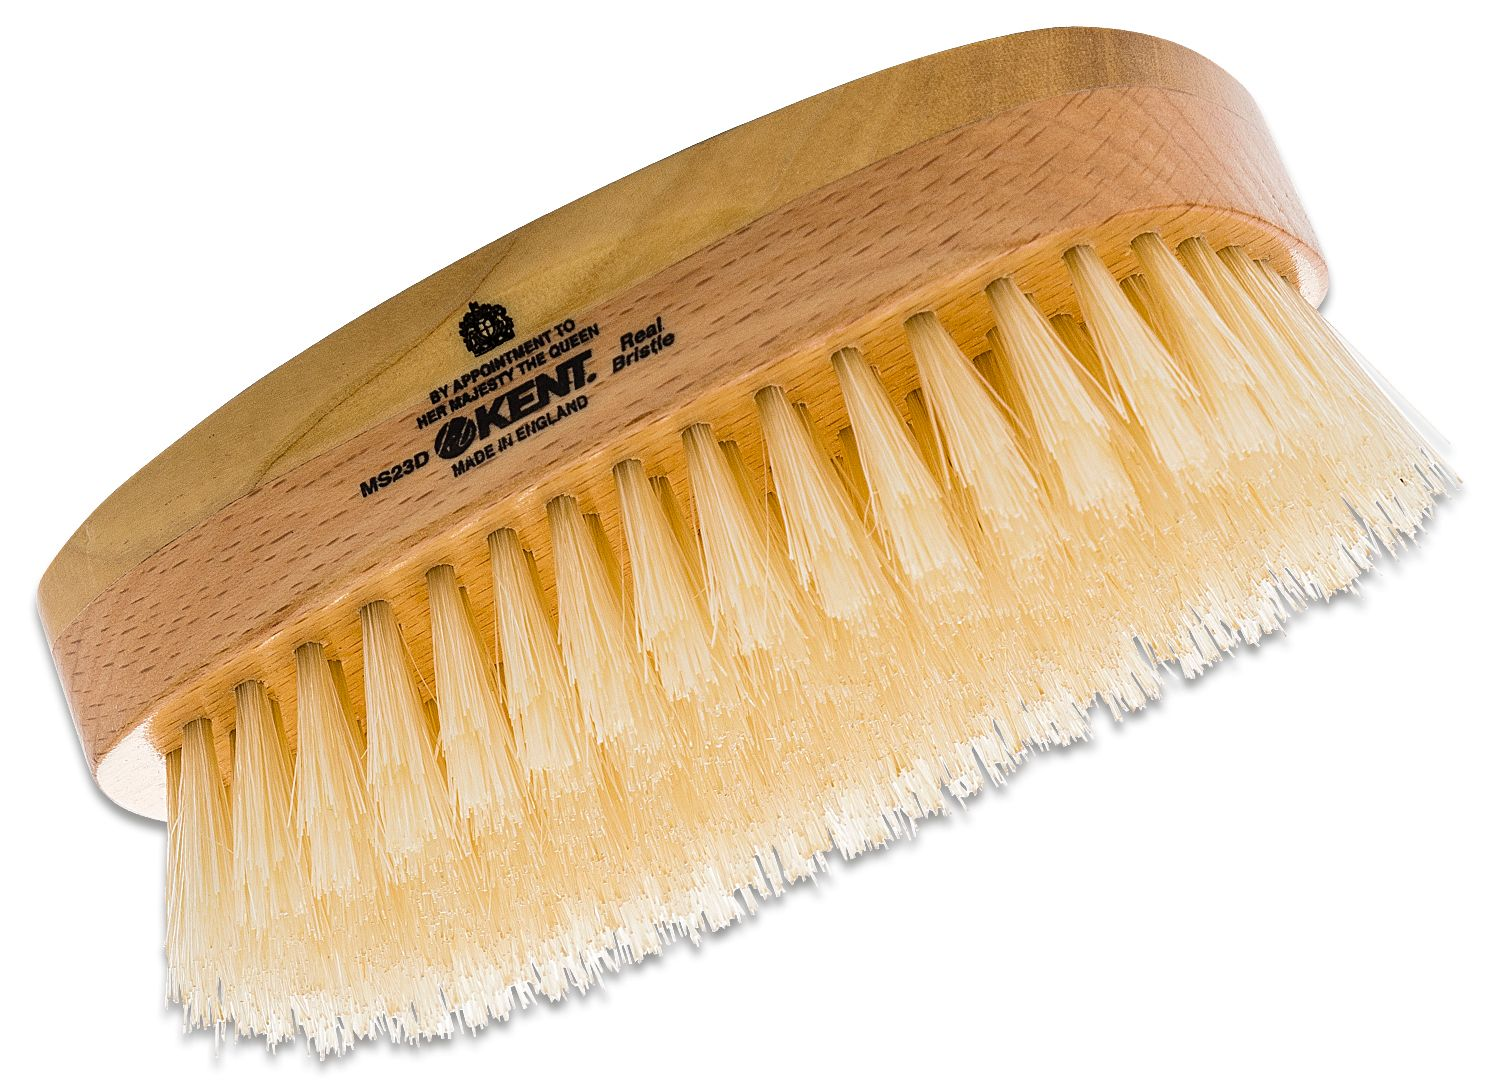 Kent Brushes MS23D Rectangular Satin and Beech Wood, Pure Soft White Bristle Hair Brush